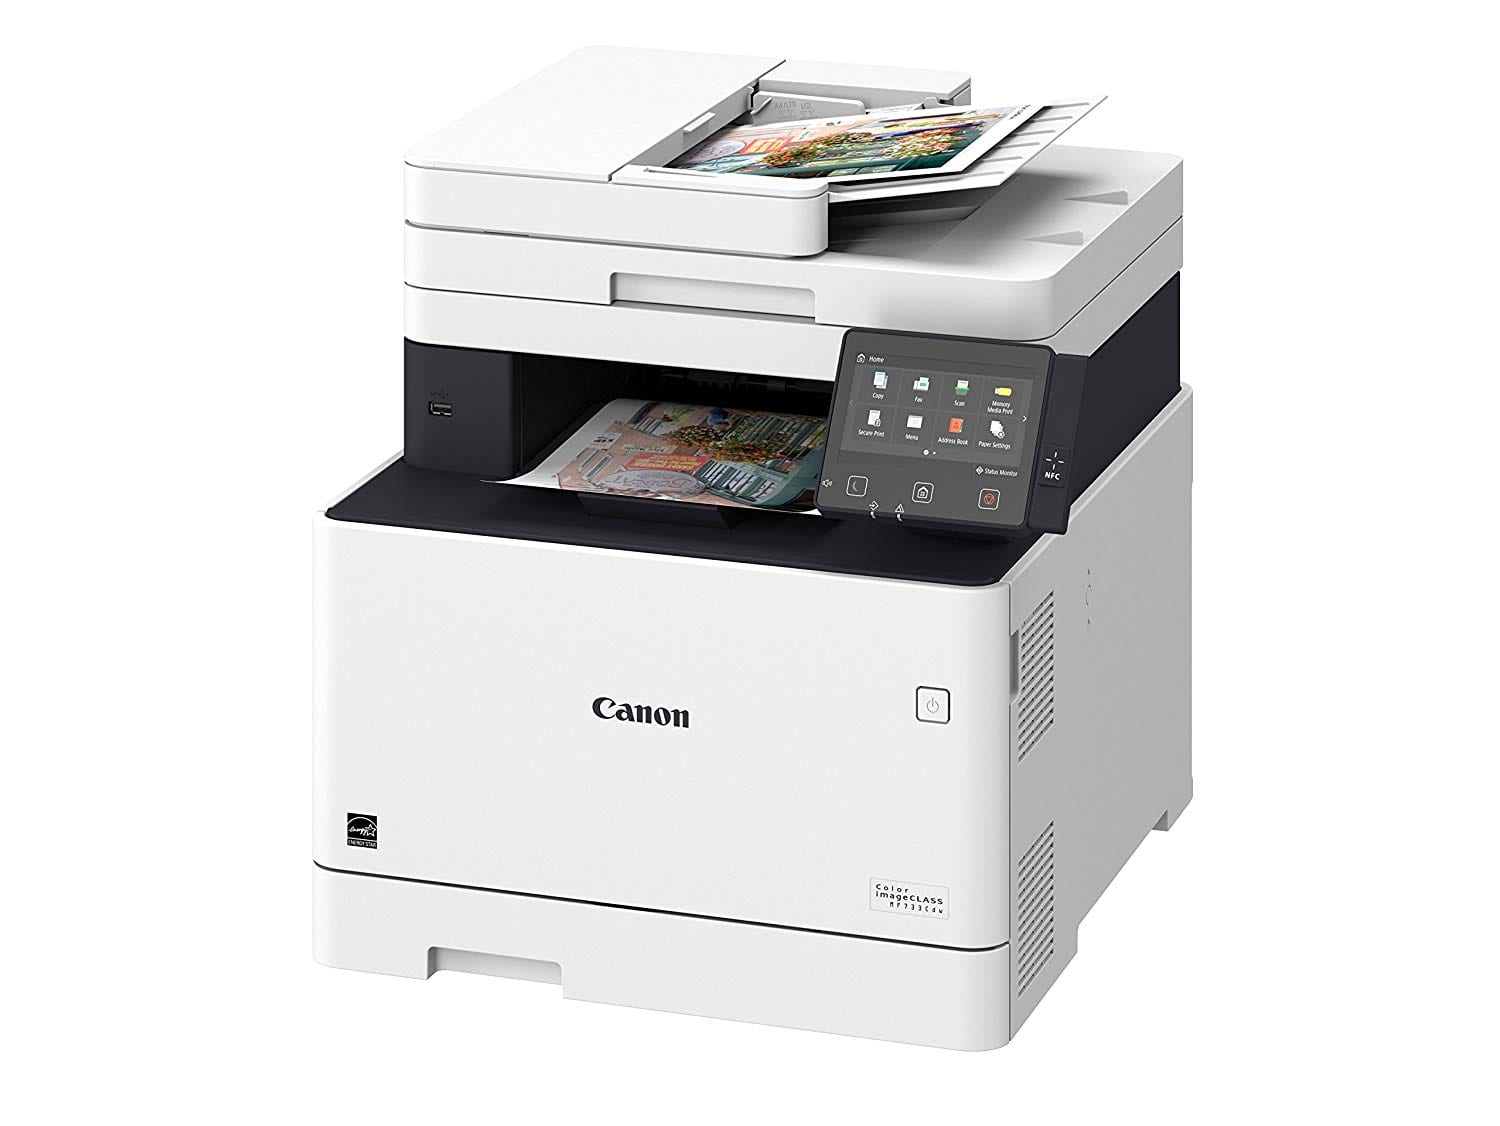 Canon imageCLASS MF733Cdw All-in-One Color Laser Printer + Google Home Mini $265 + Free Shipping